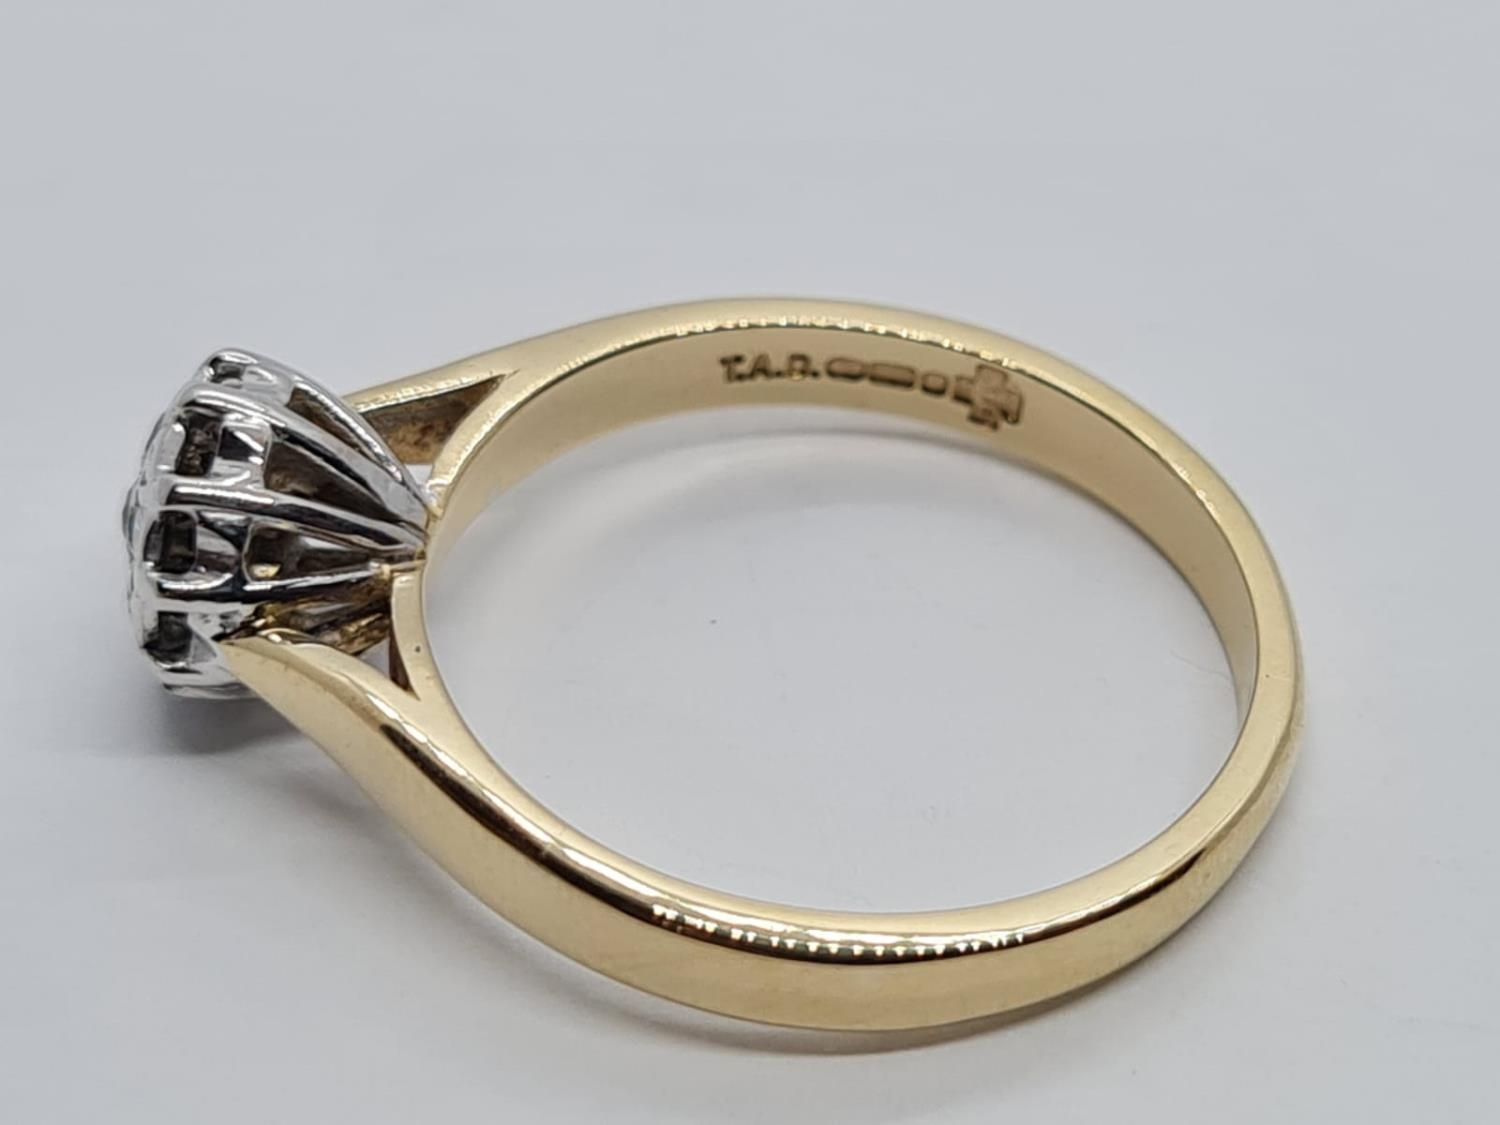 9K YELLOW GOLD DIAMOND SET CLUSTER VINTAGE RING 0.15CT DIAMONDS APPROX WEIGHT 2.6G SIZE N - Image 3 of 5